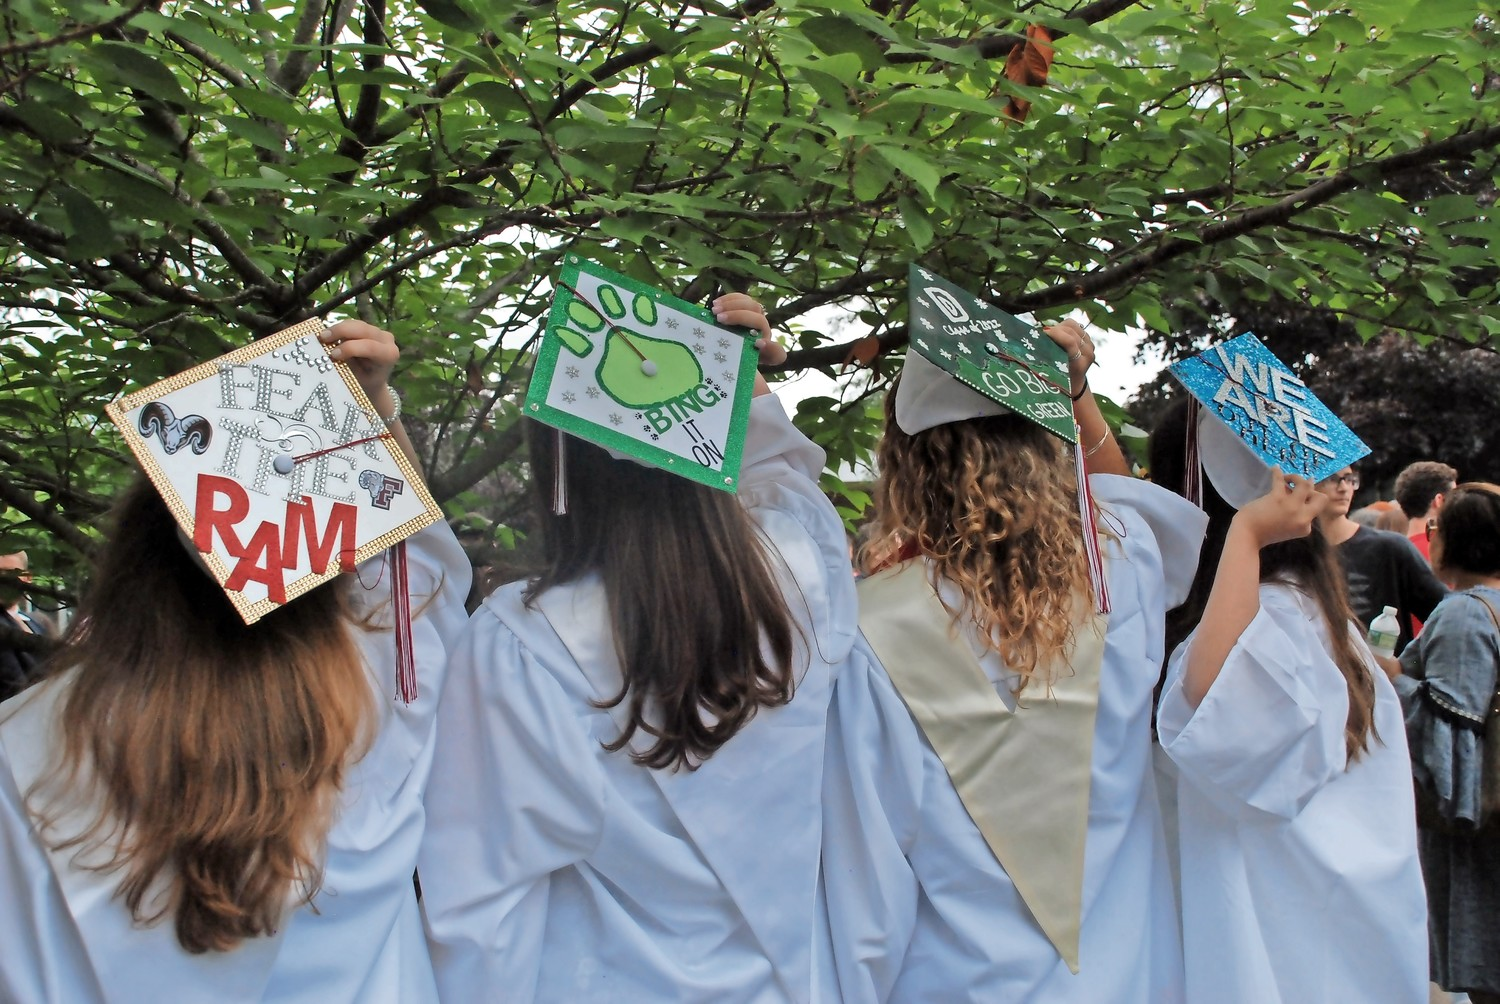 Seniors Eileen Quinn, Meagan Kearney, Izzy Glennon and Emma Grinberg turned their headgear into message boards.